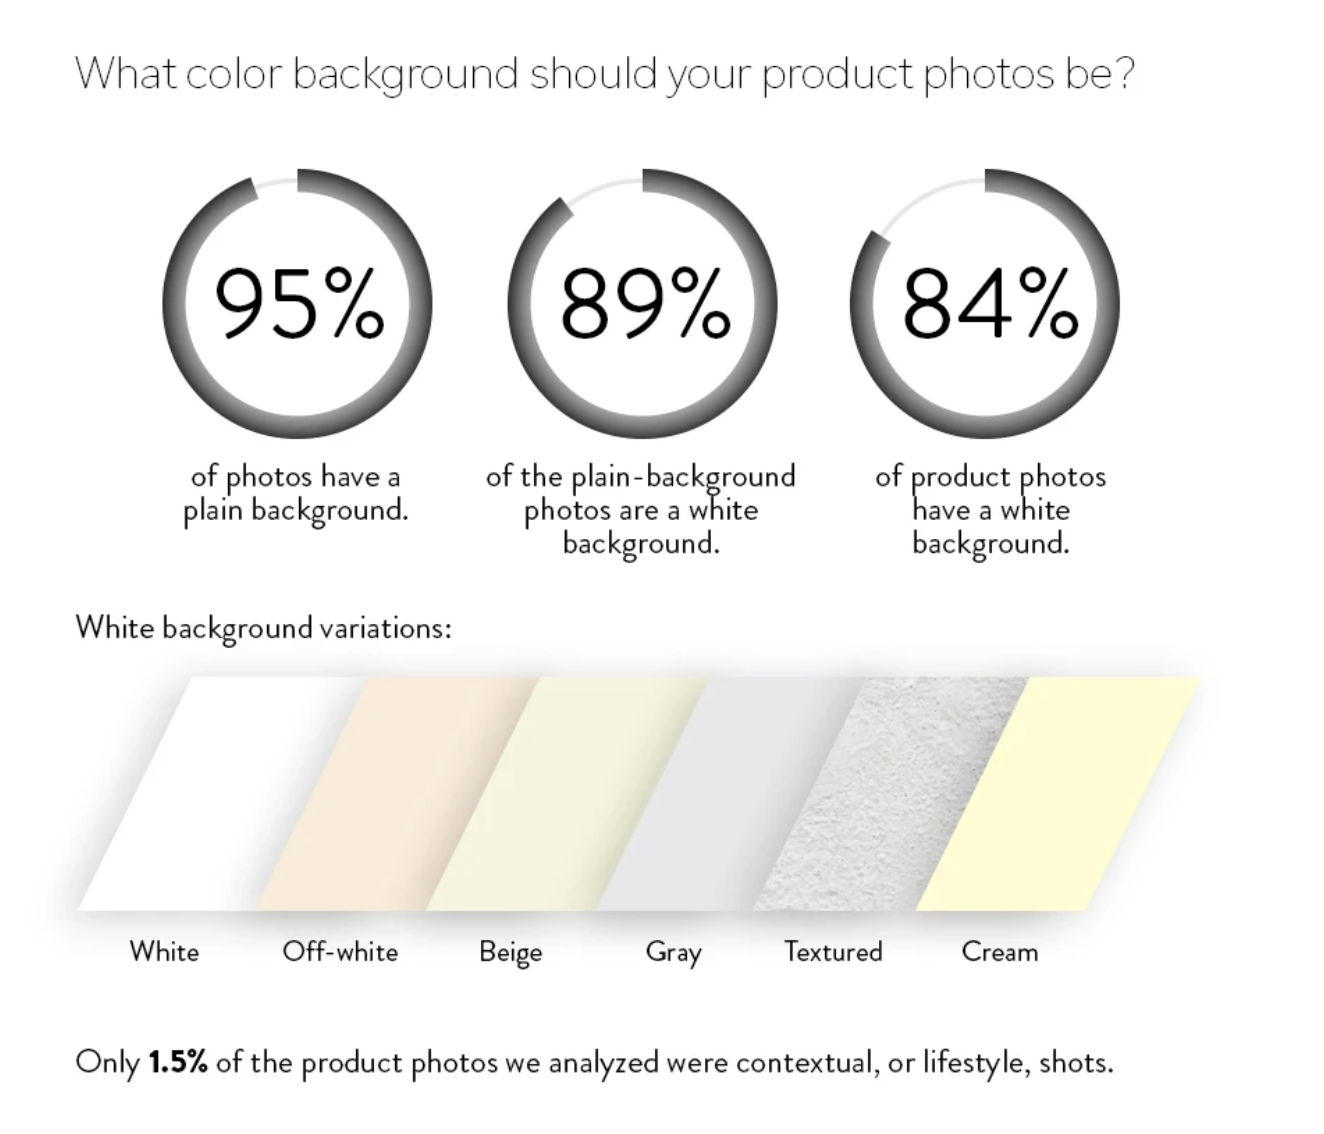 What color background should your product photos be?